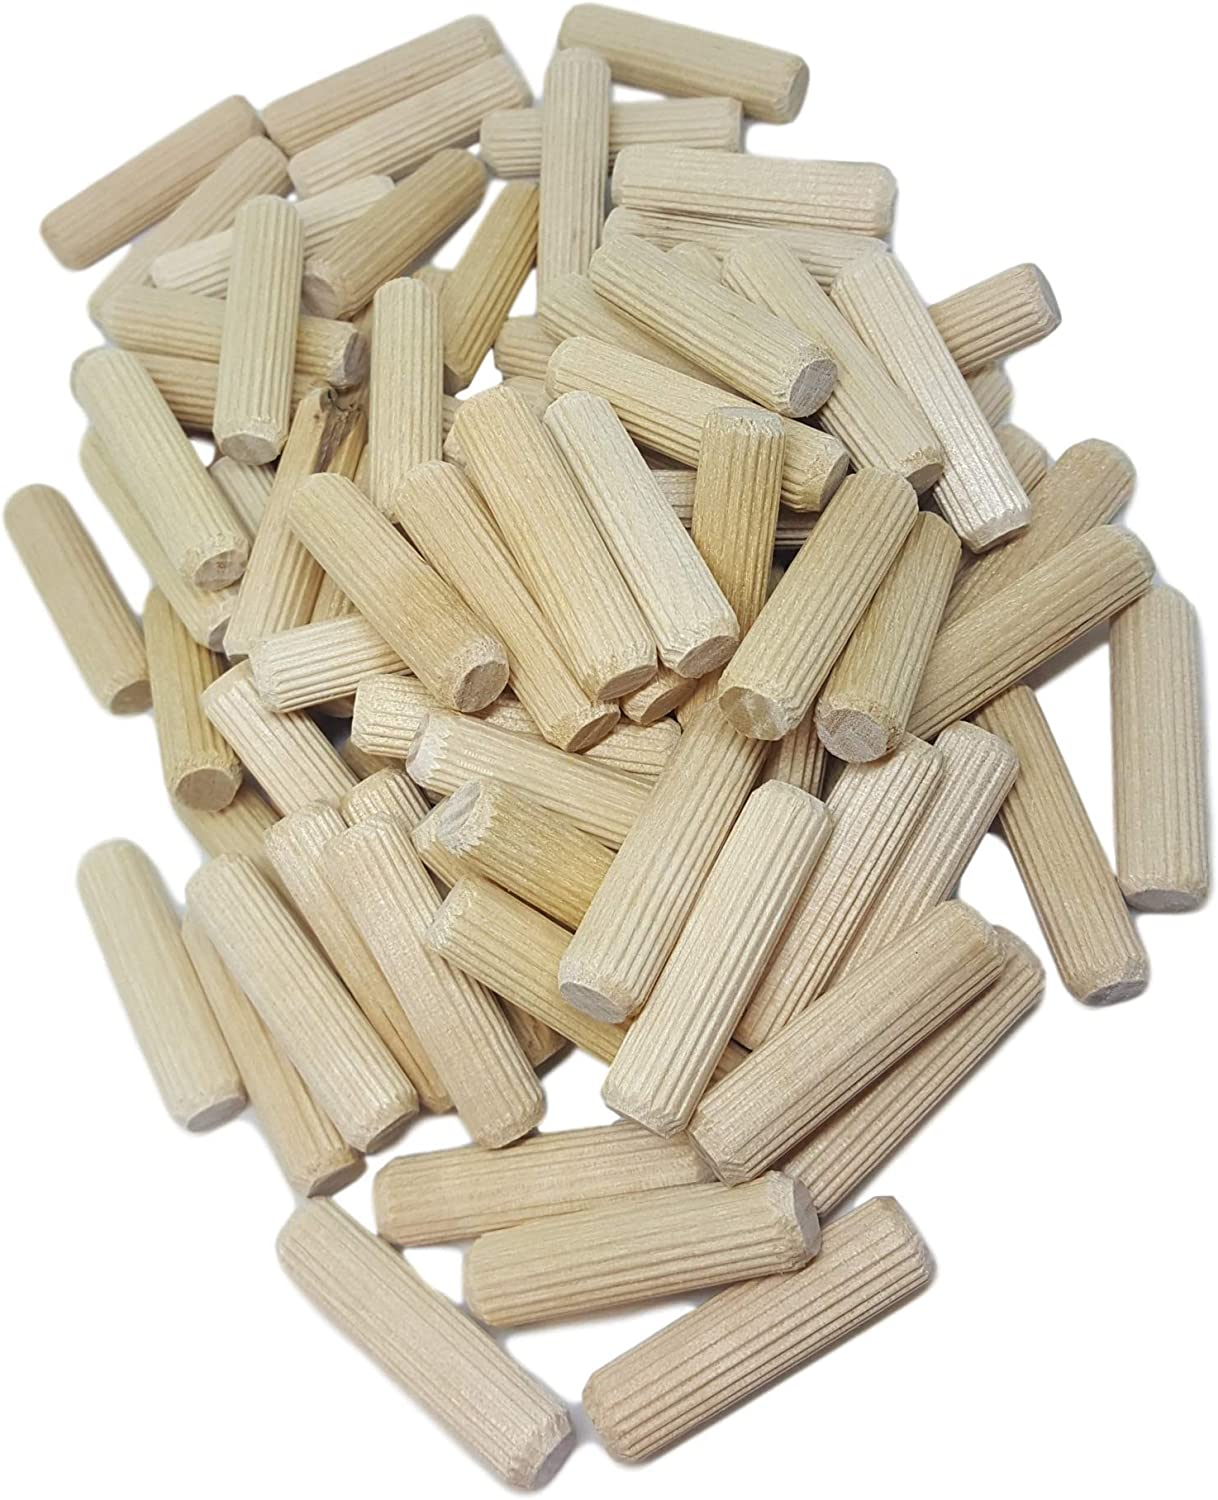 100 Pack 1//2 x 2 Wooden Dowel Pins Wood Kiln Dried Fluted and Beveled Made of Hardwood in U.S.A.